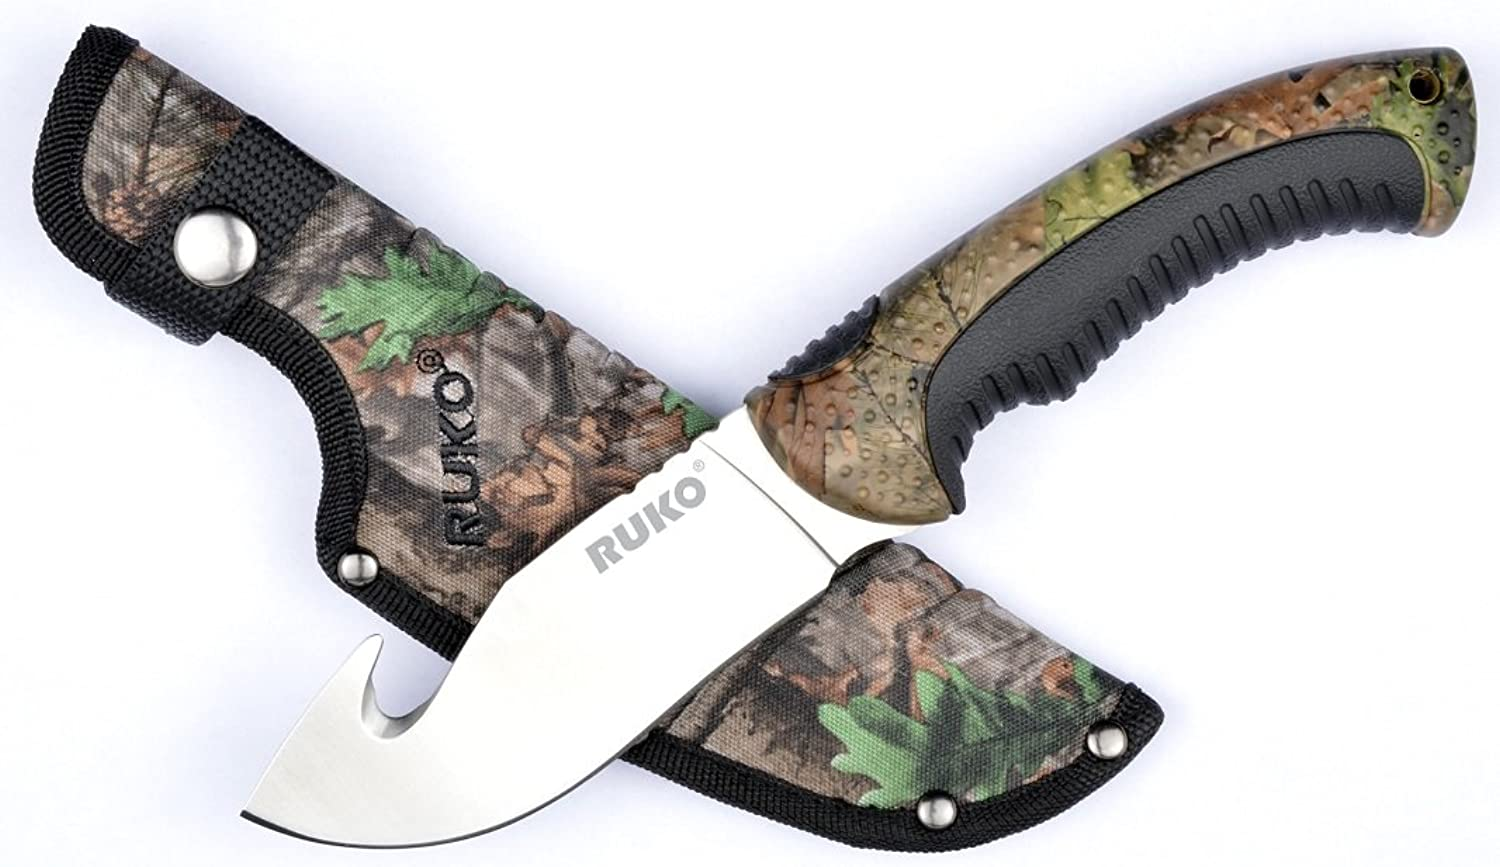 RUKO RUK0154GHCACS 7Cr17MoV Fixed Gut Hook Blade Knife WX3D Handle with RhinoHide Insert Clamshell, 41 2